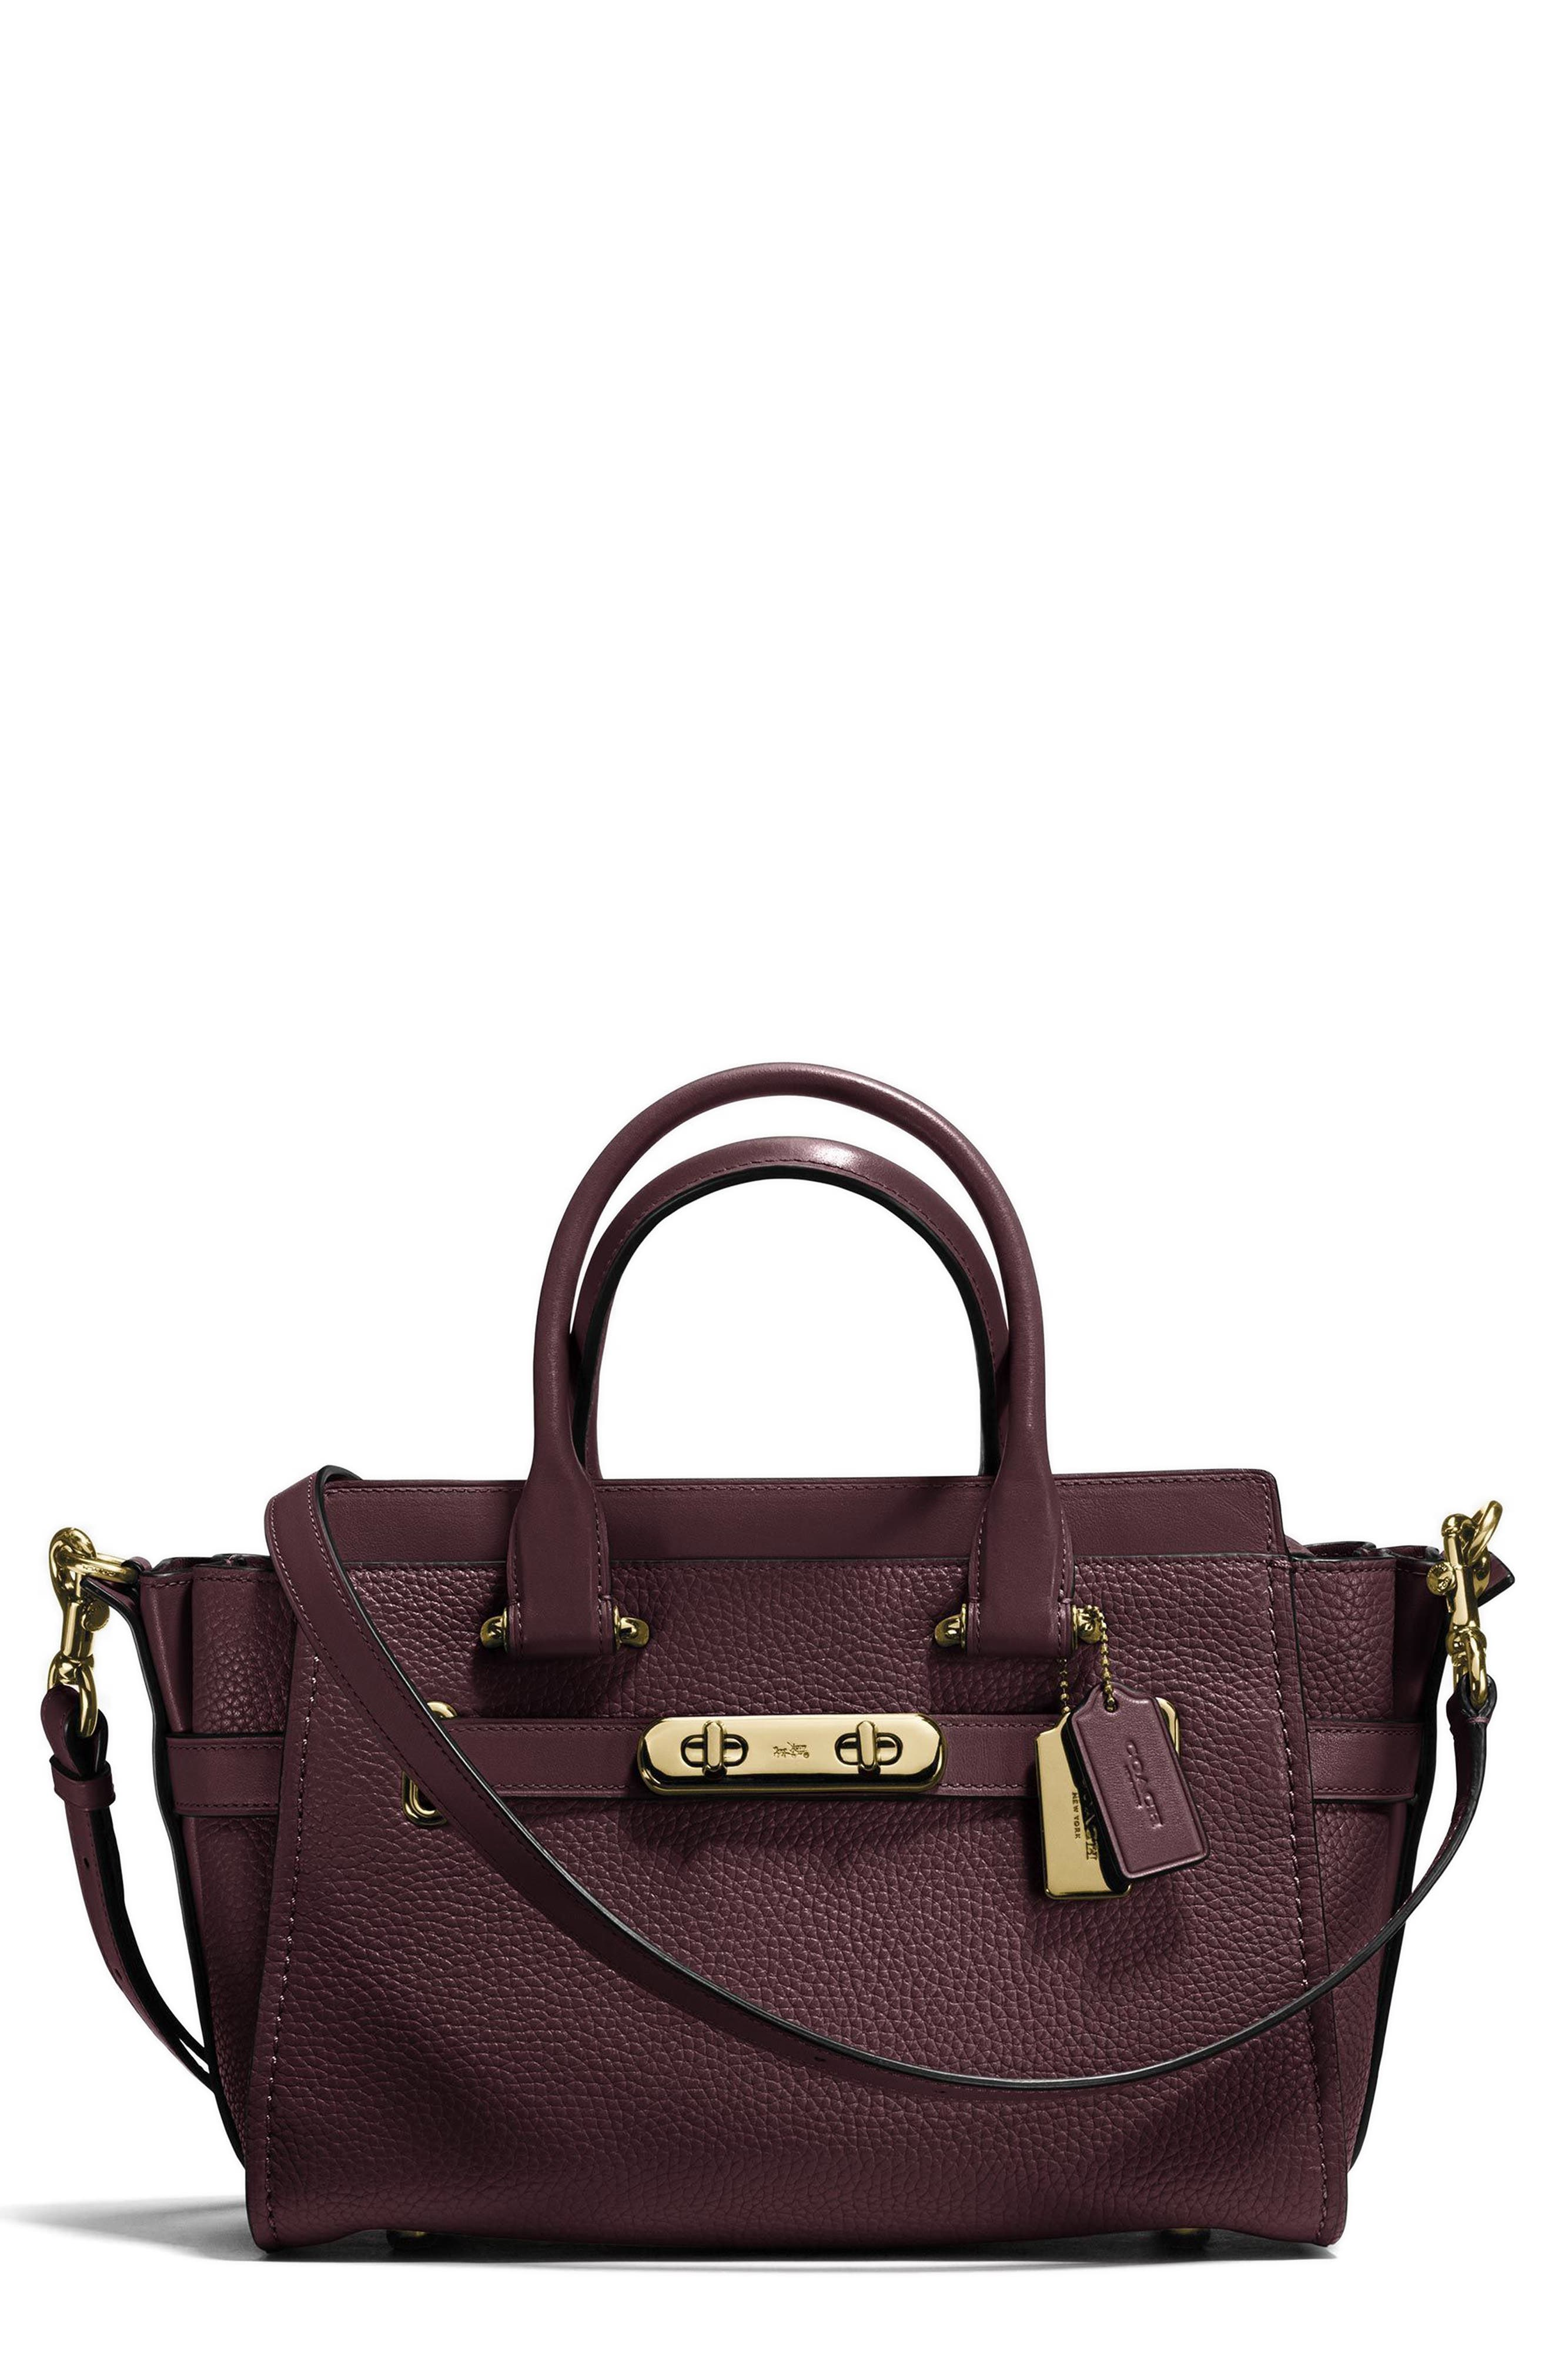 Main Image - COACH Swagger 27 Calfskin Leather Satchel